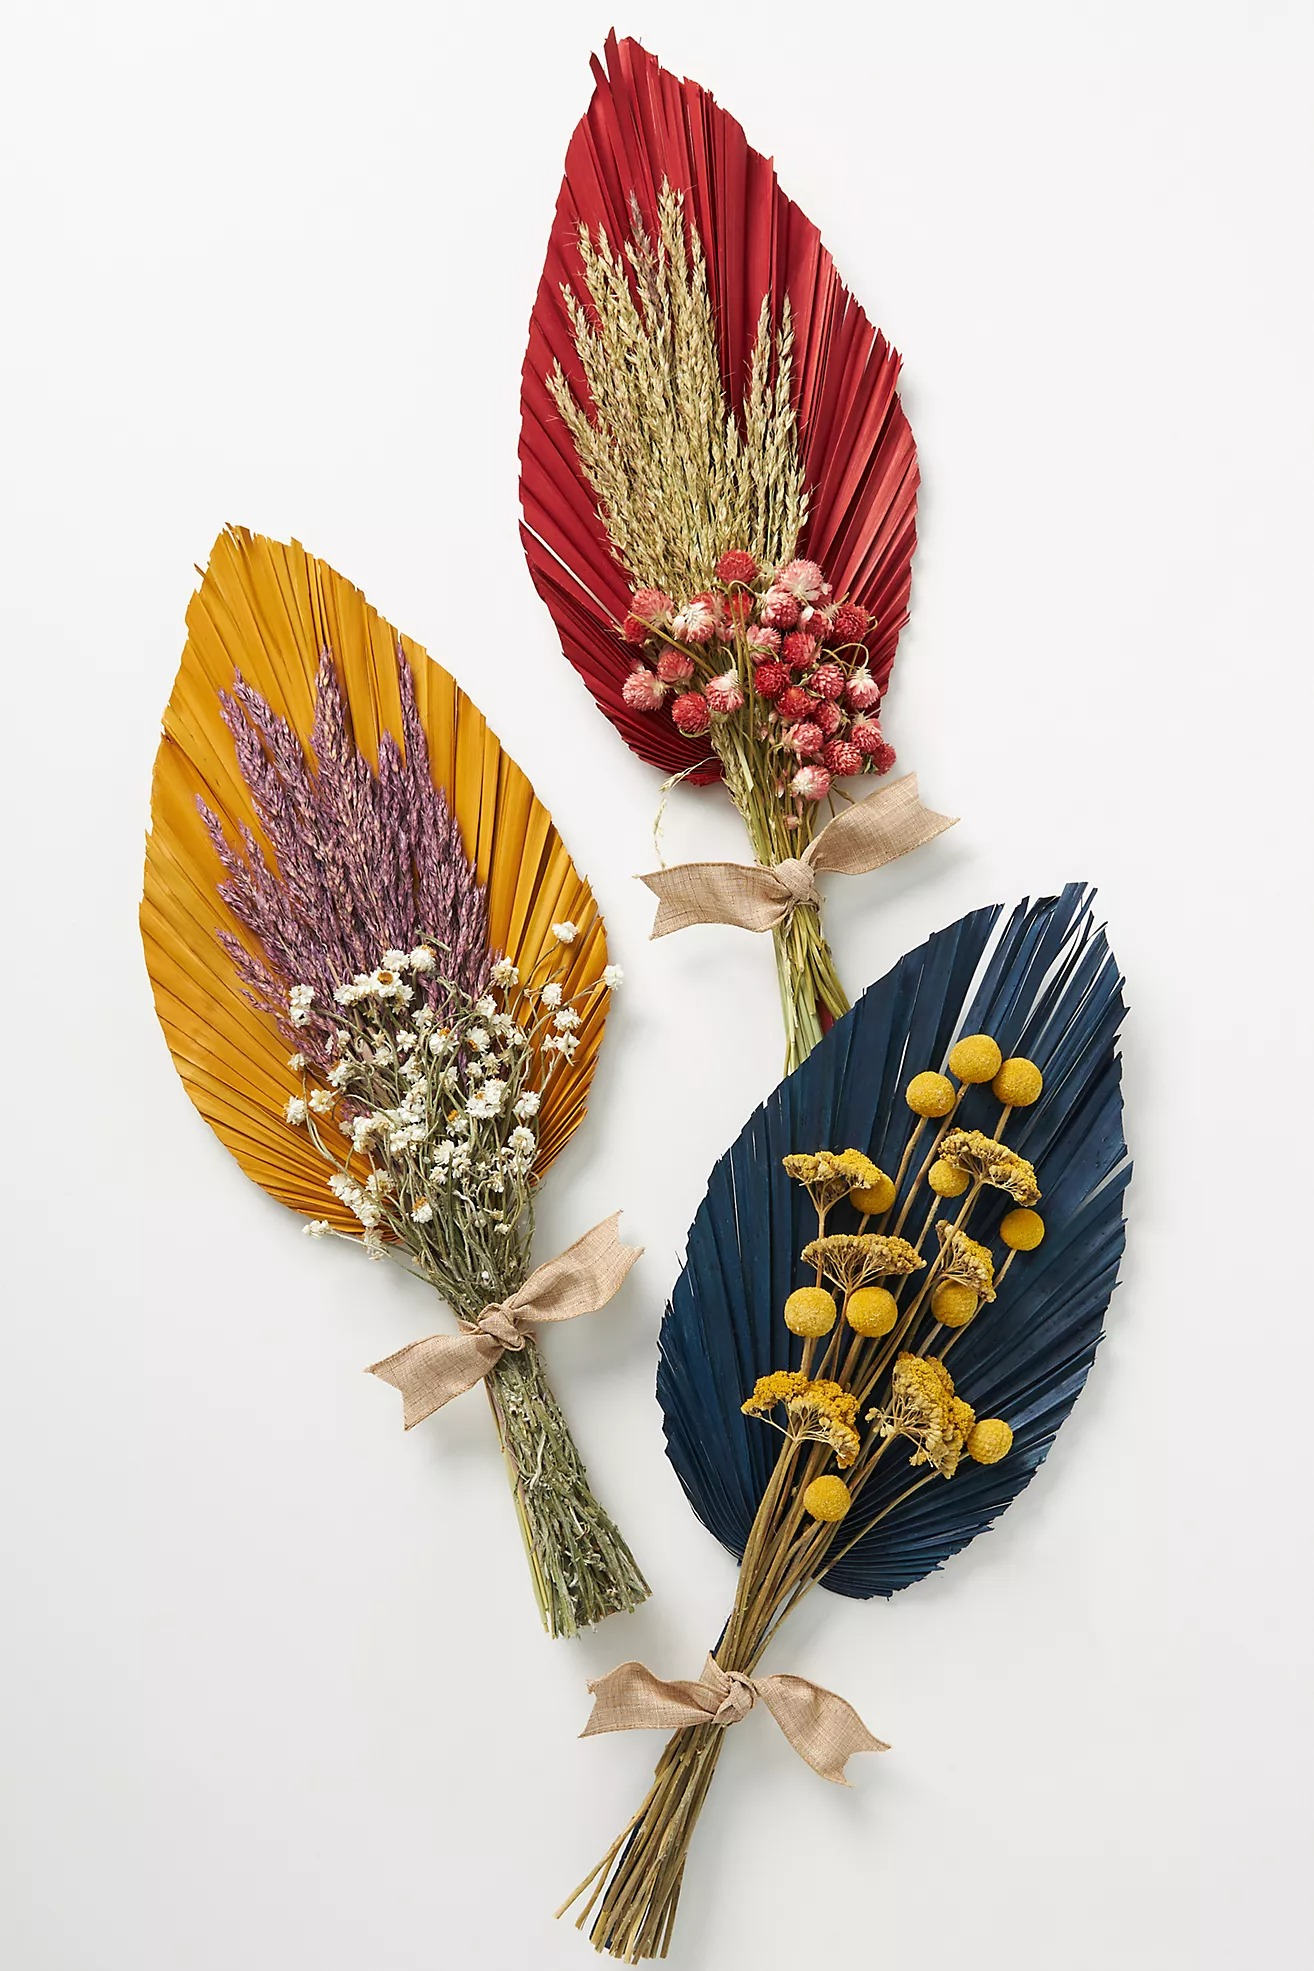 arrangement of dried palm flower bouquets from Anthropologie online